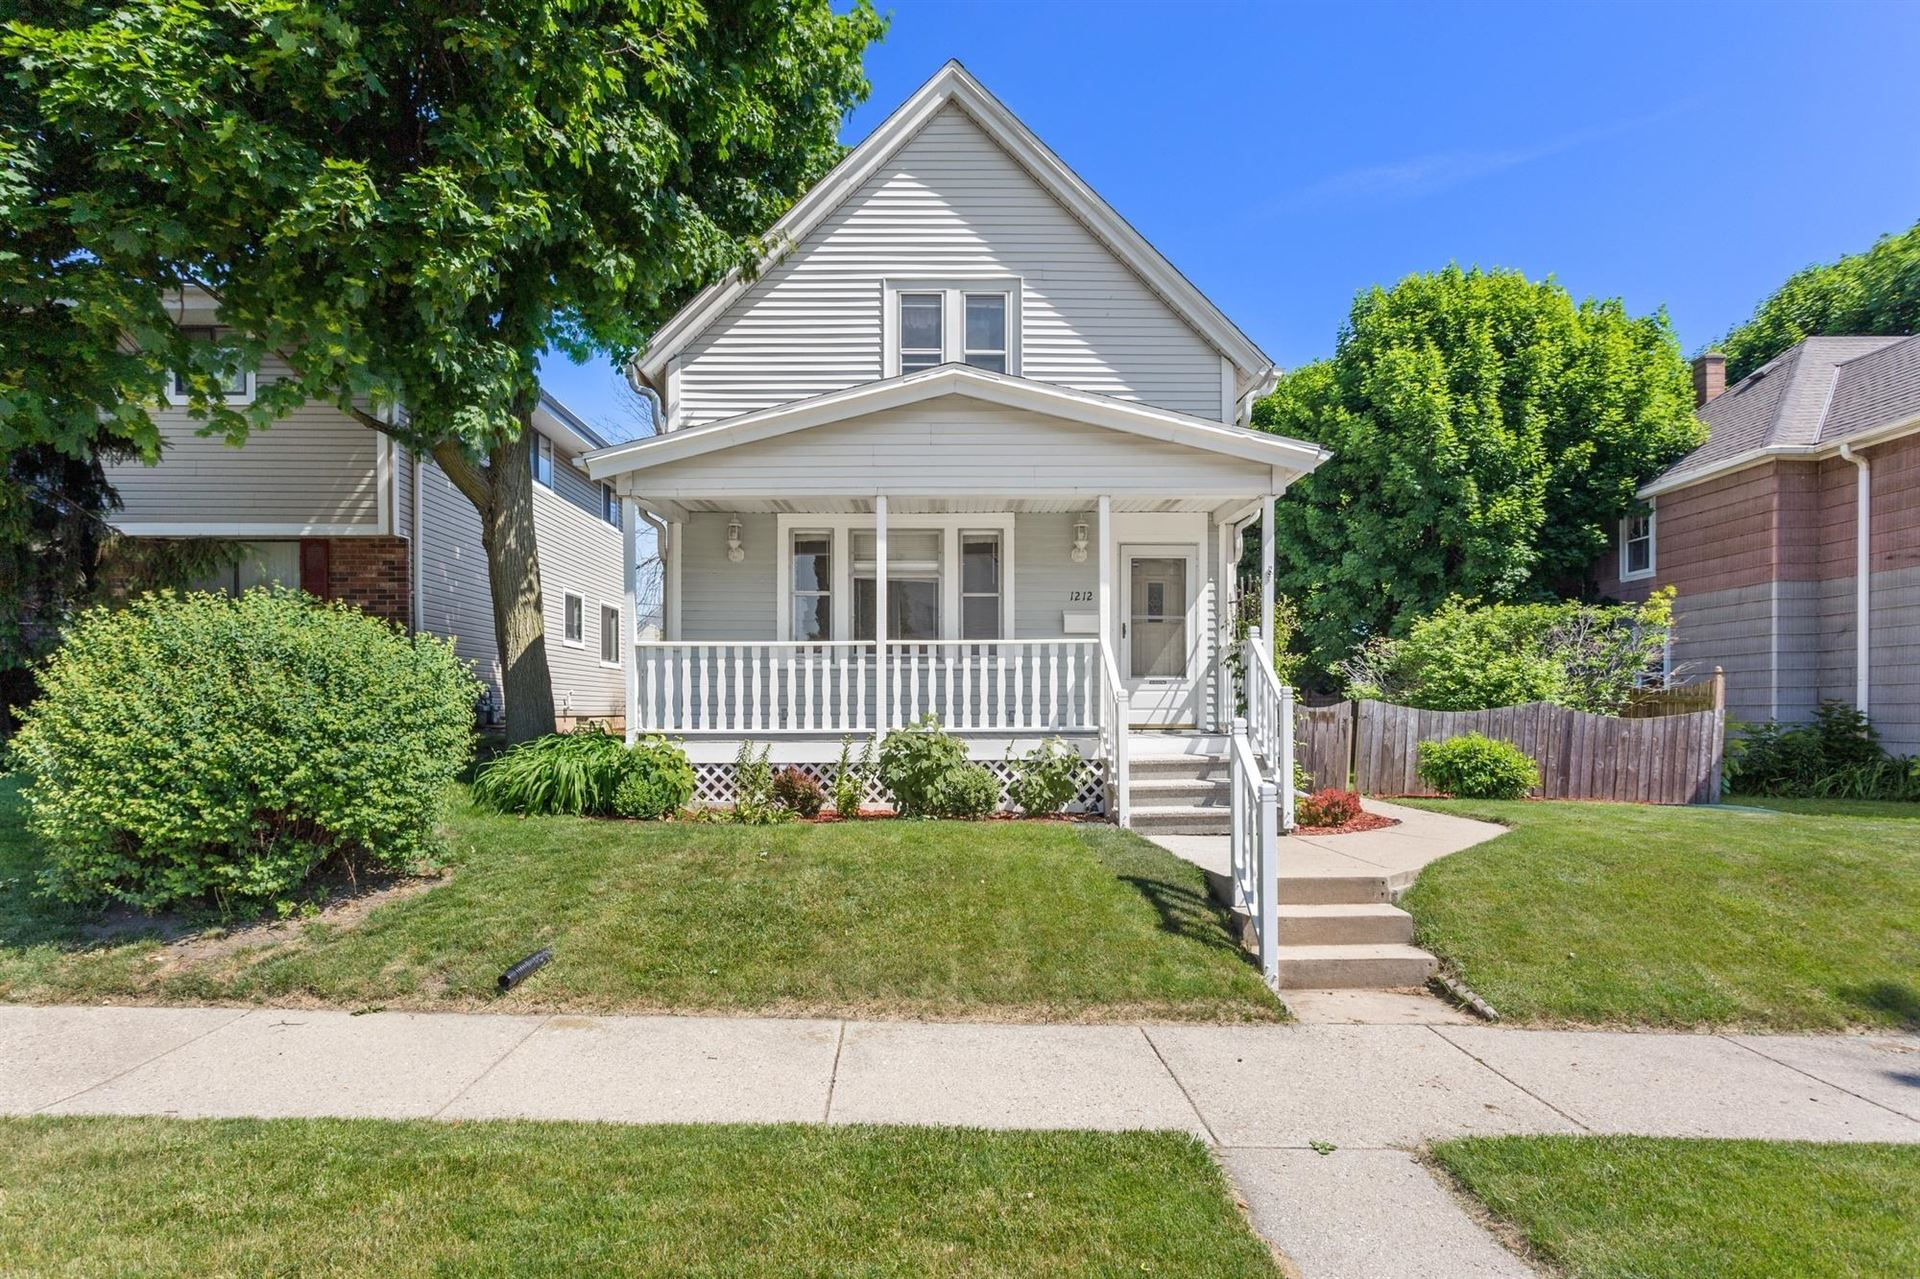 1212 Michigan Ave, South Milwaukee, WI 53172 - #: 1695249